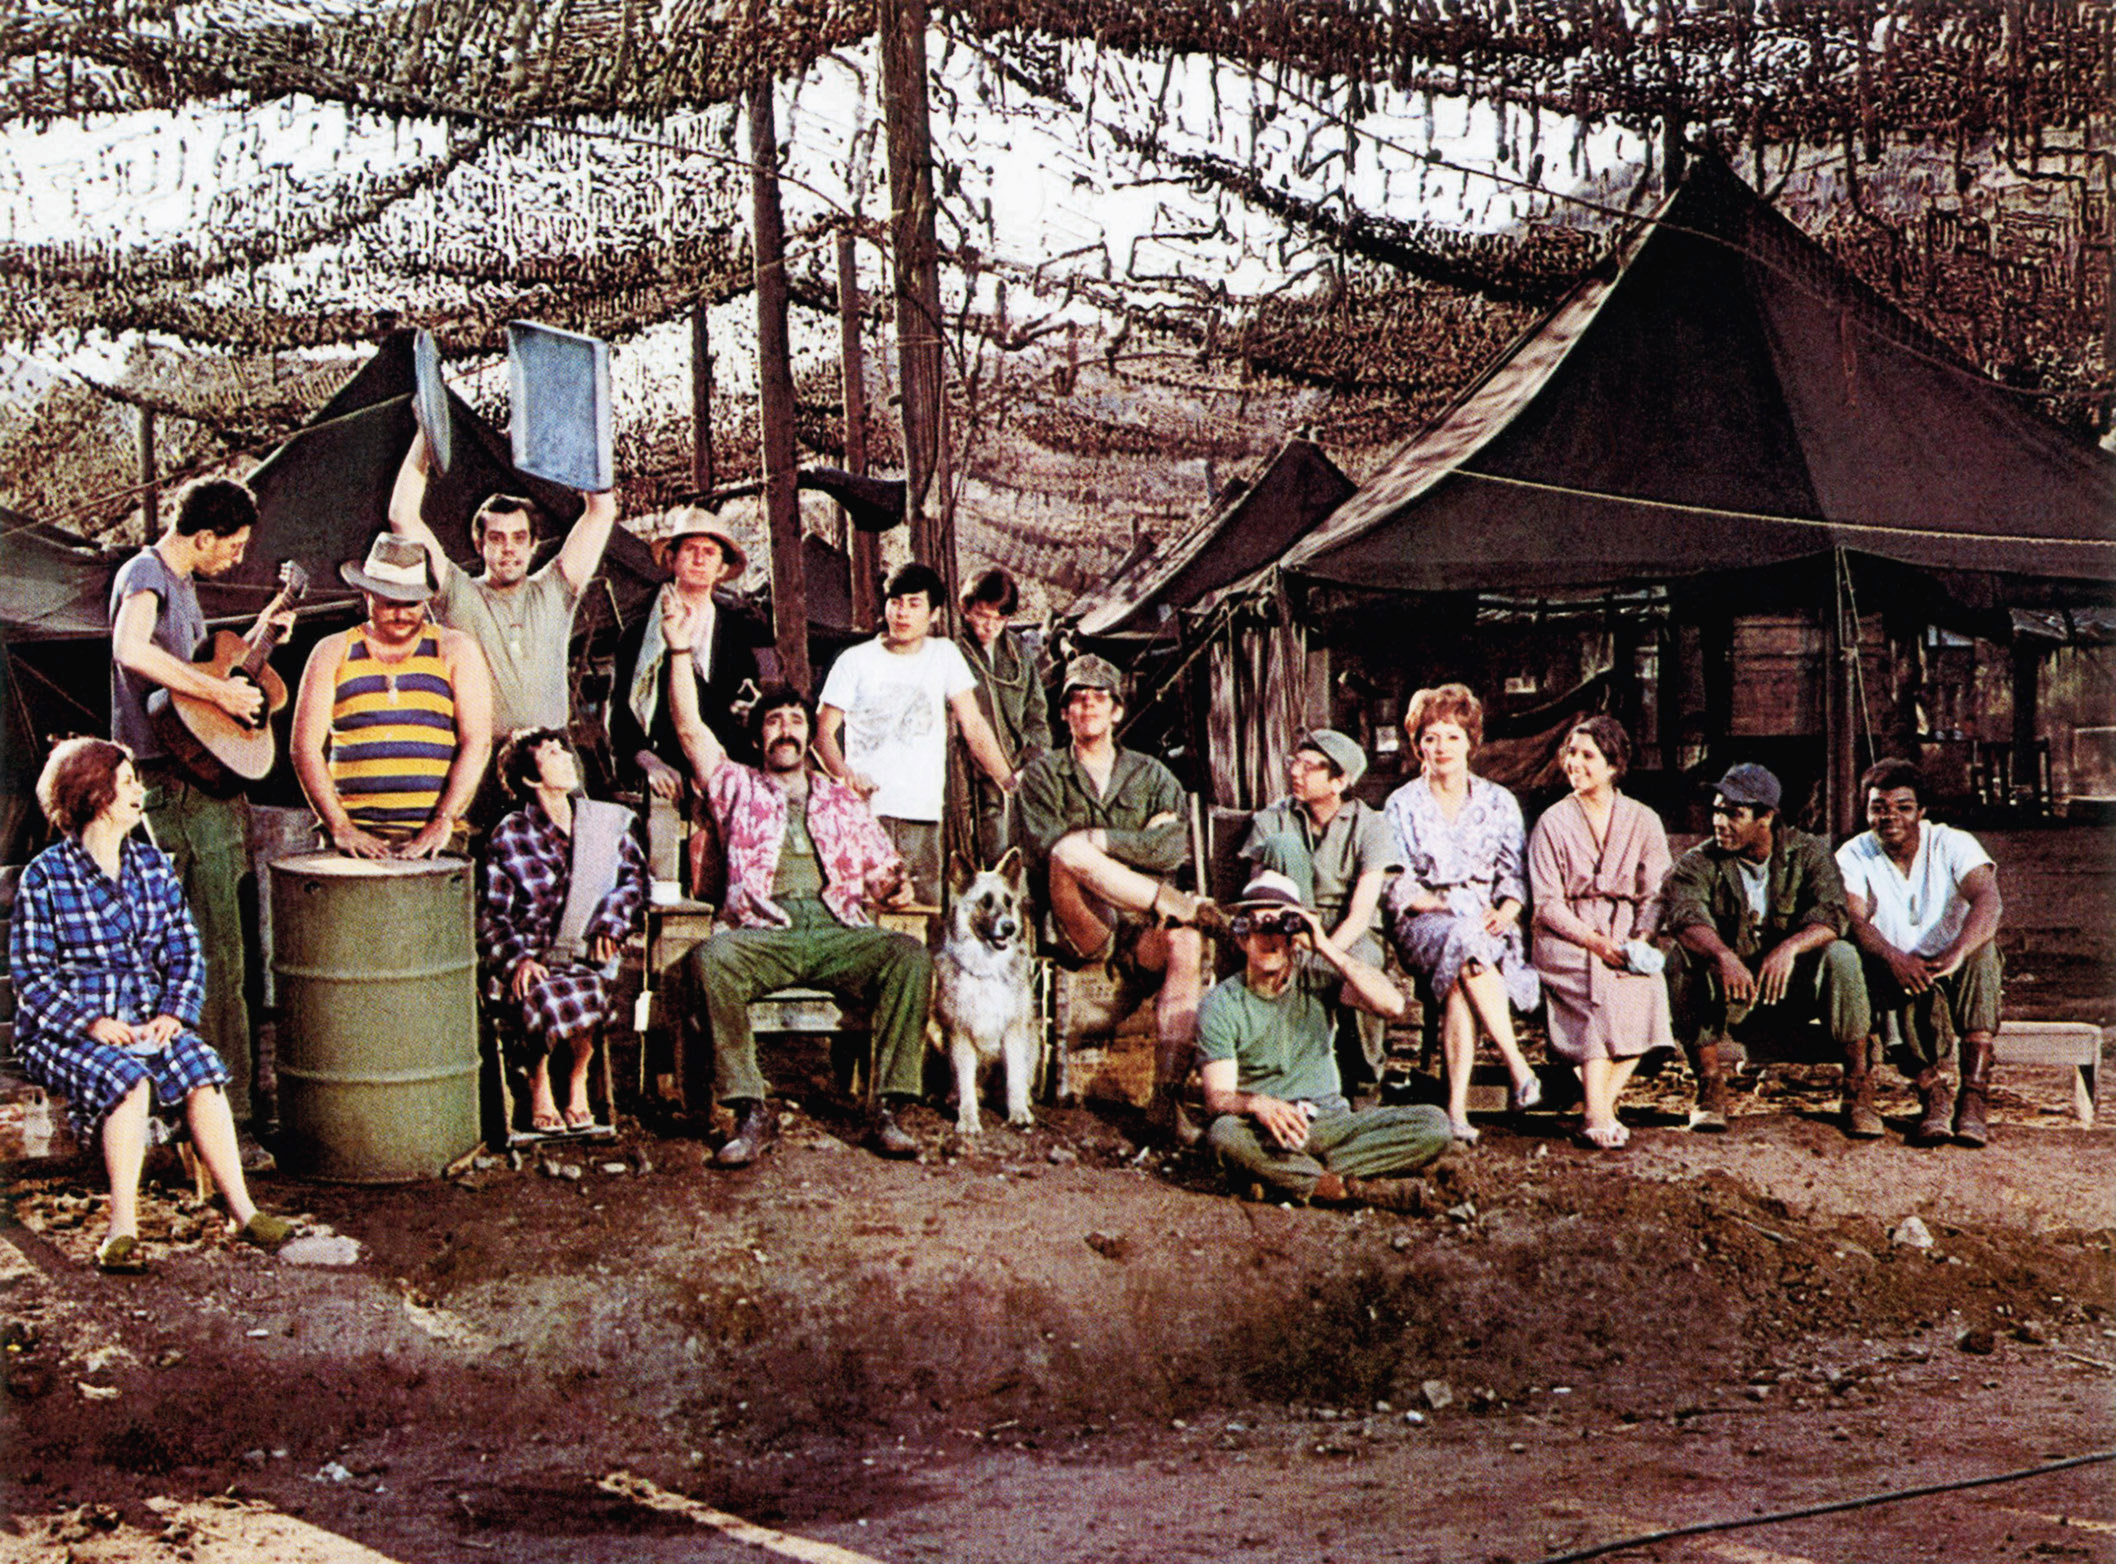 photo of the cast of M*A*S*H